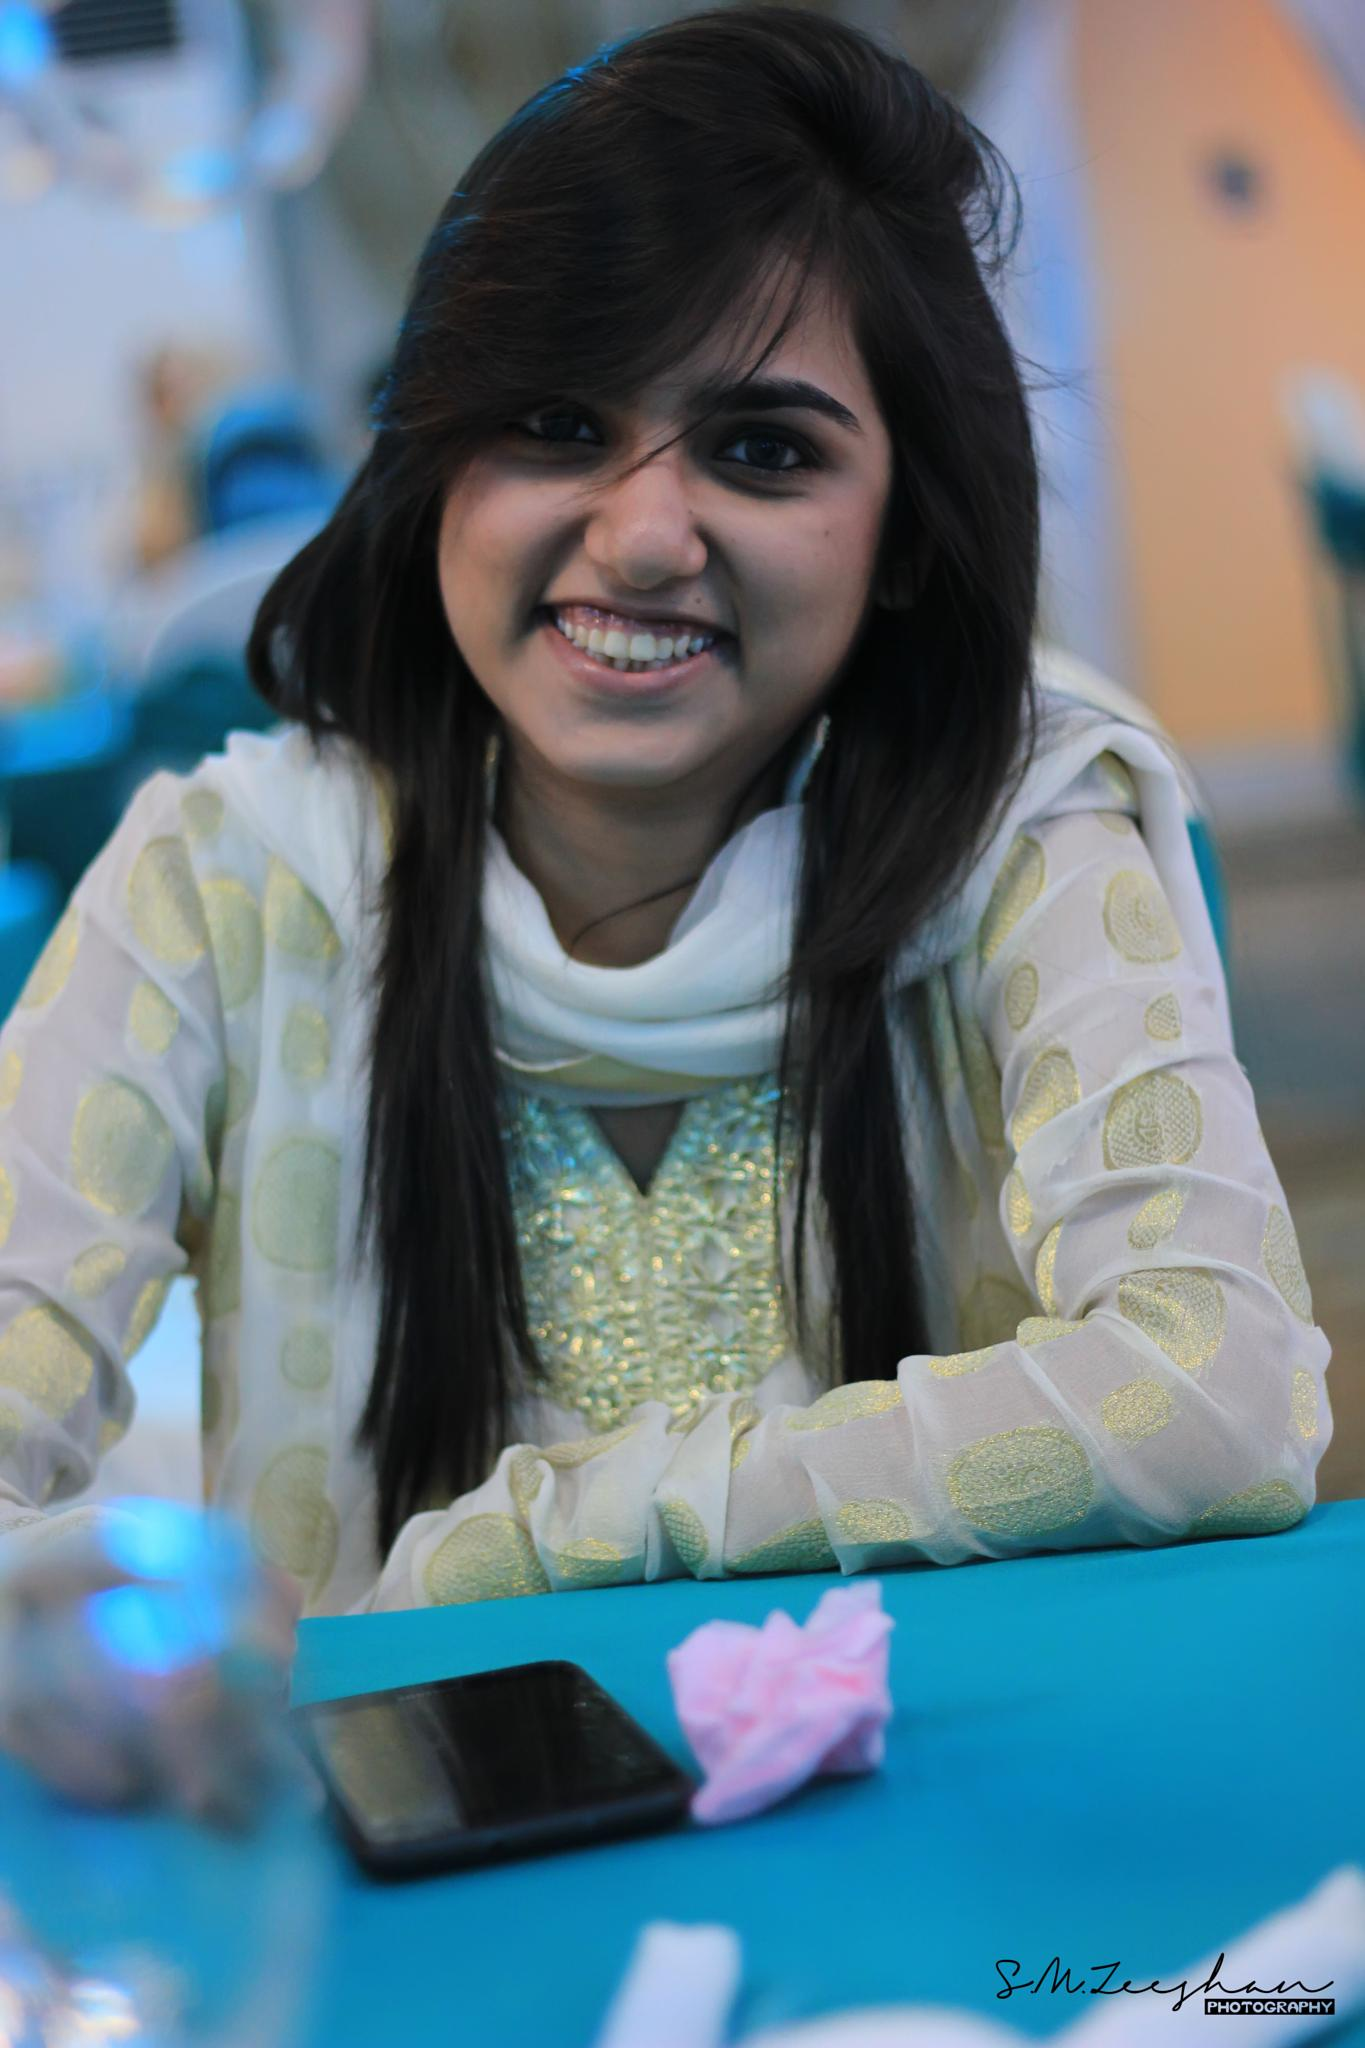 Smile :D by SMZeeshanphotography